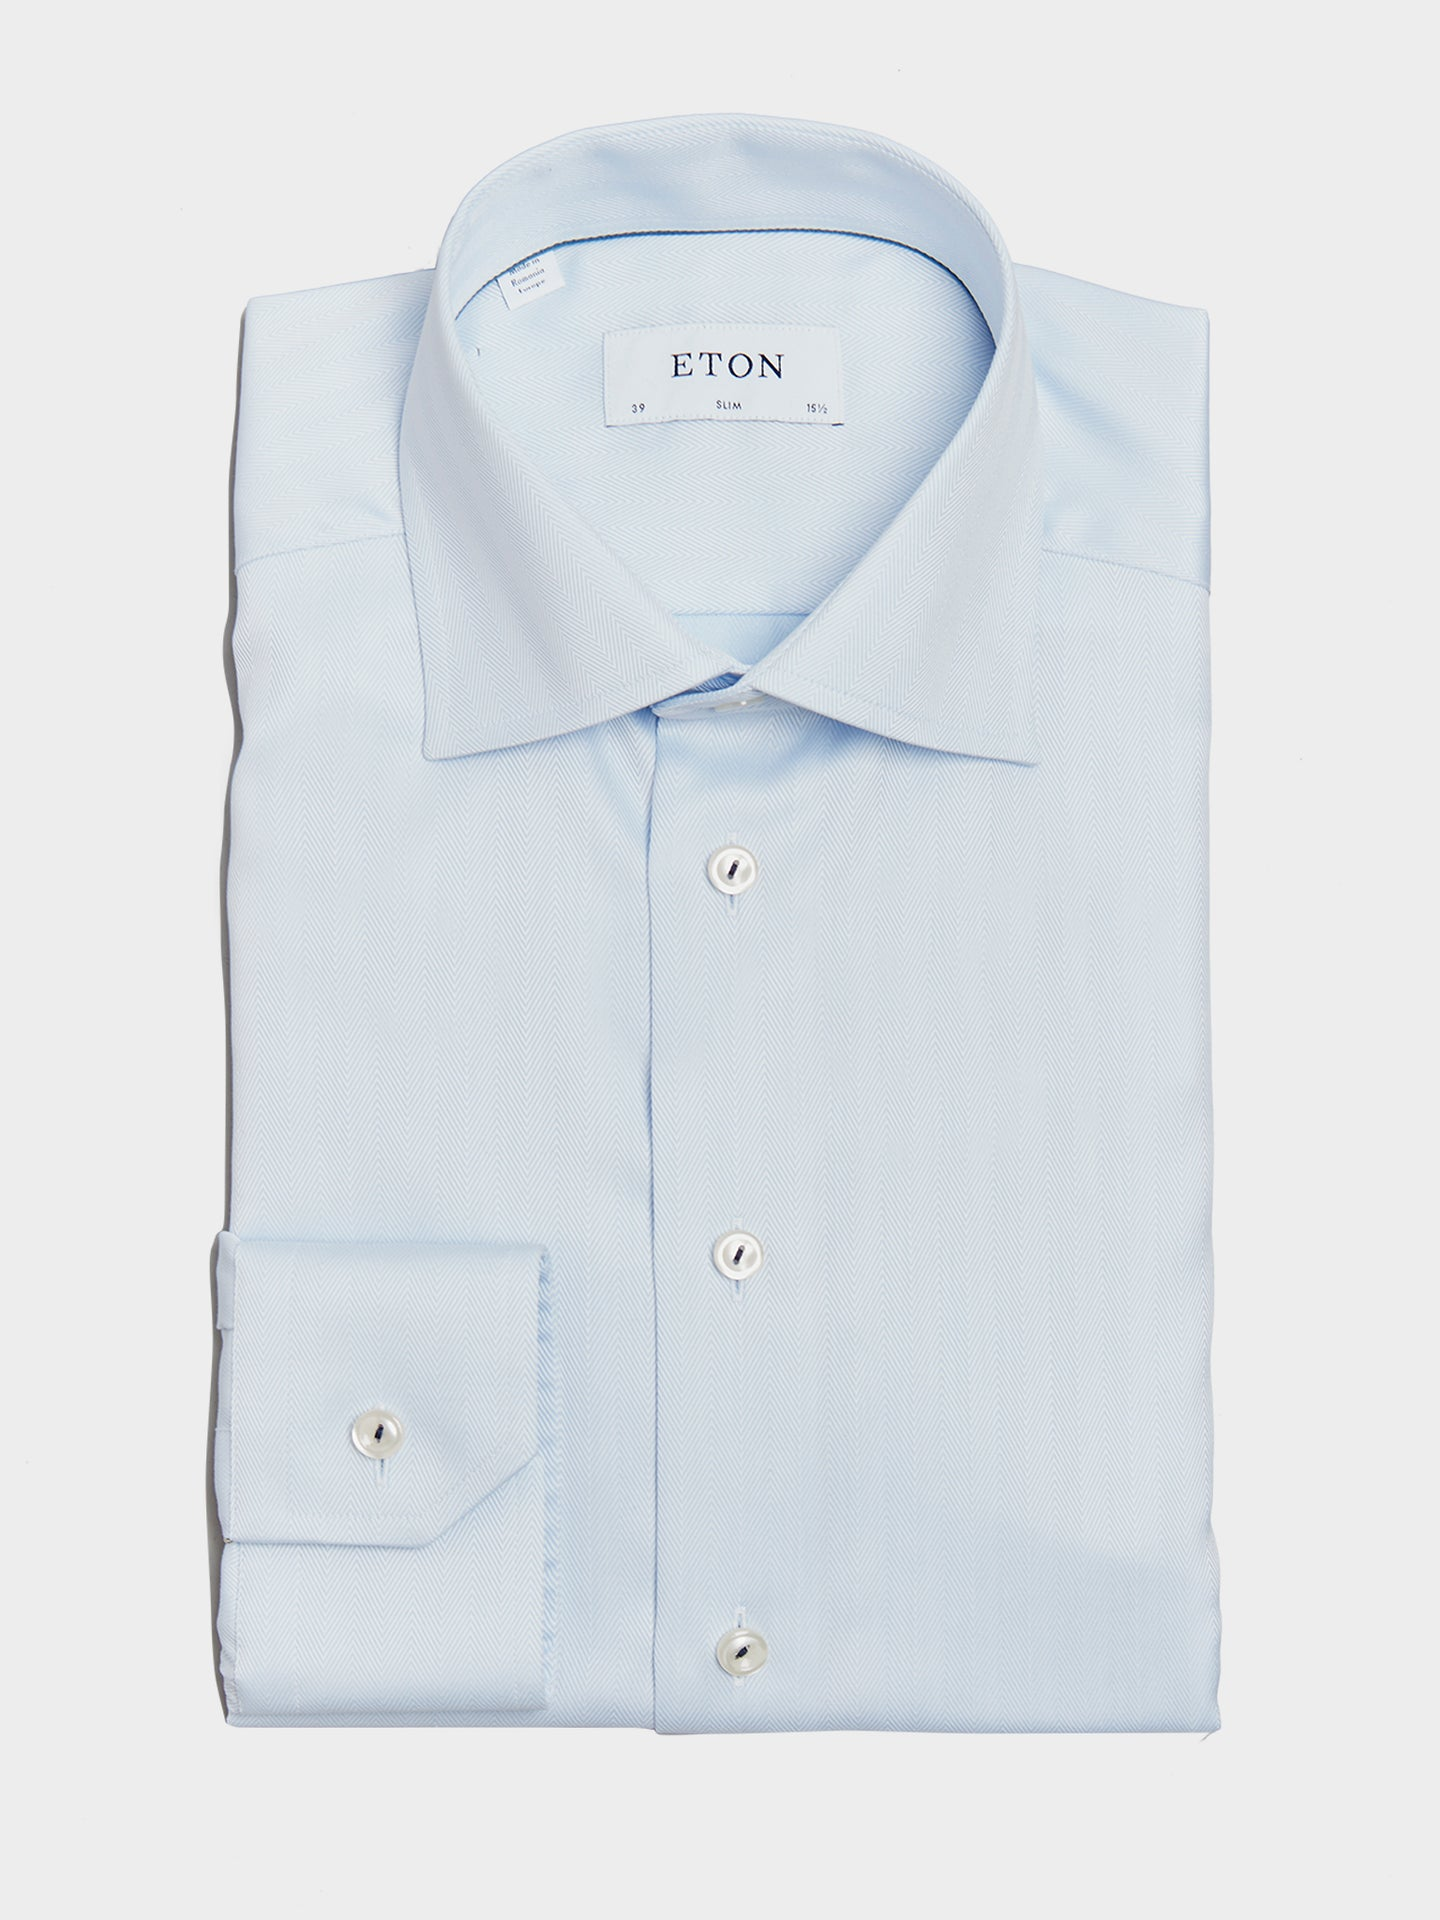 ETON Slim Fit Pointed Collar Herringbone Shirt (Blue)